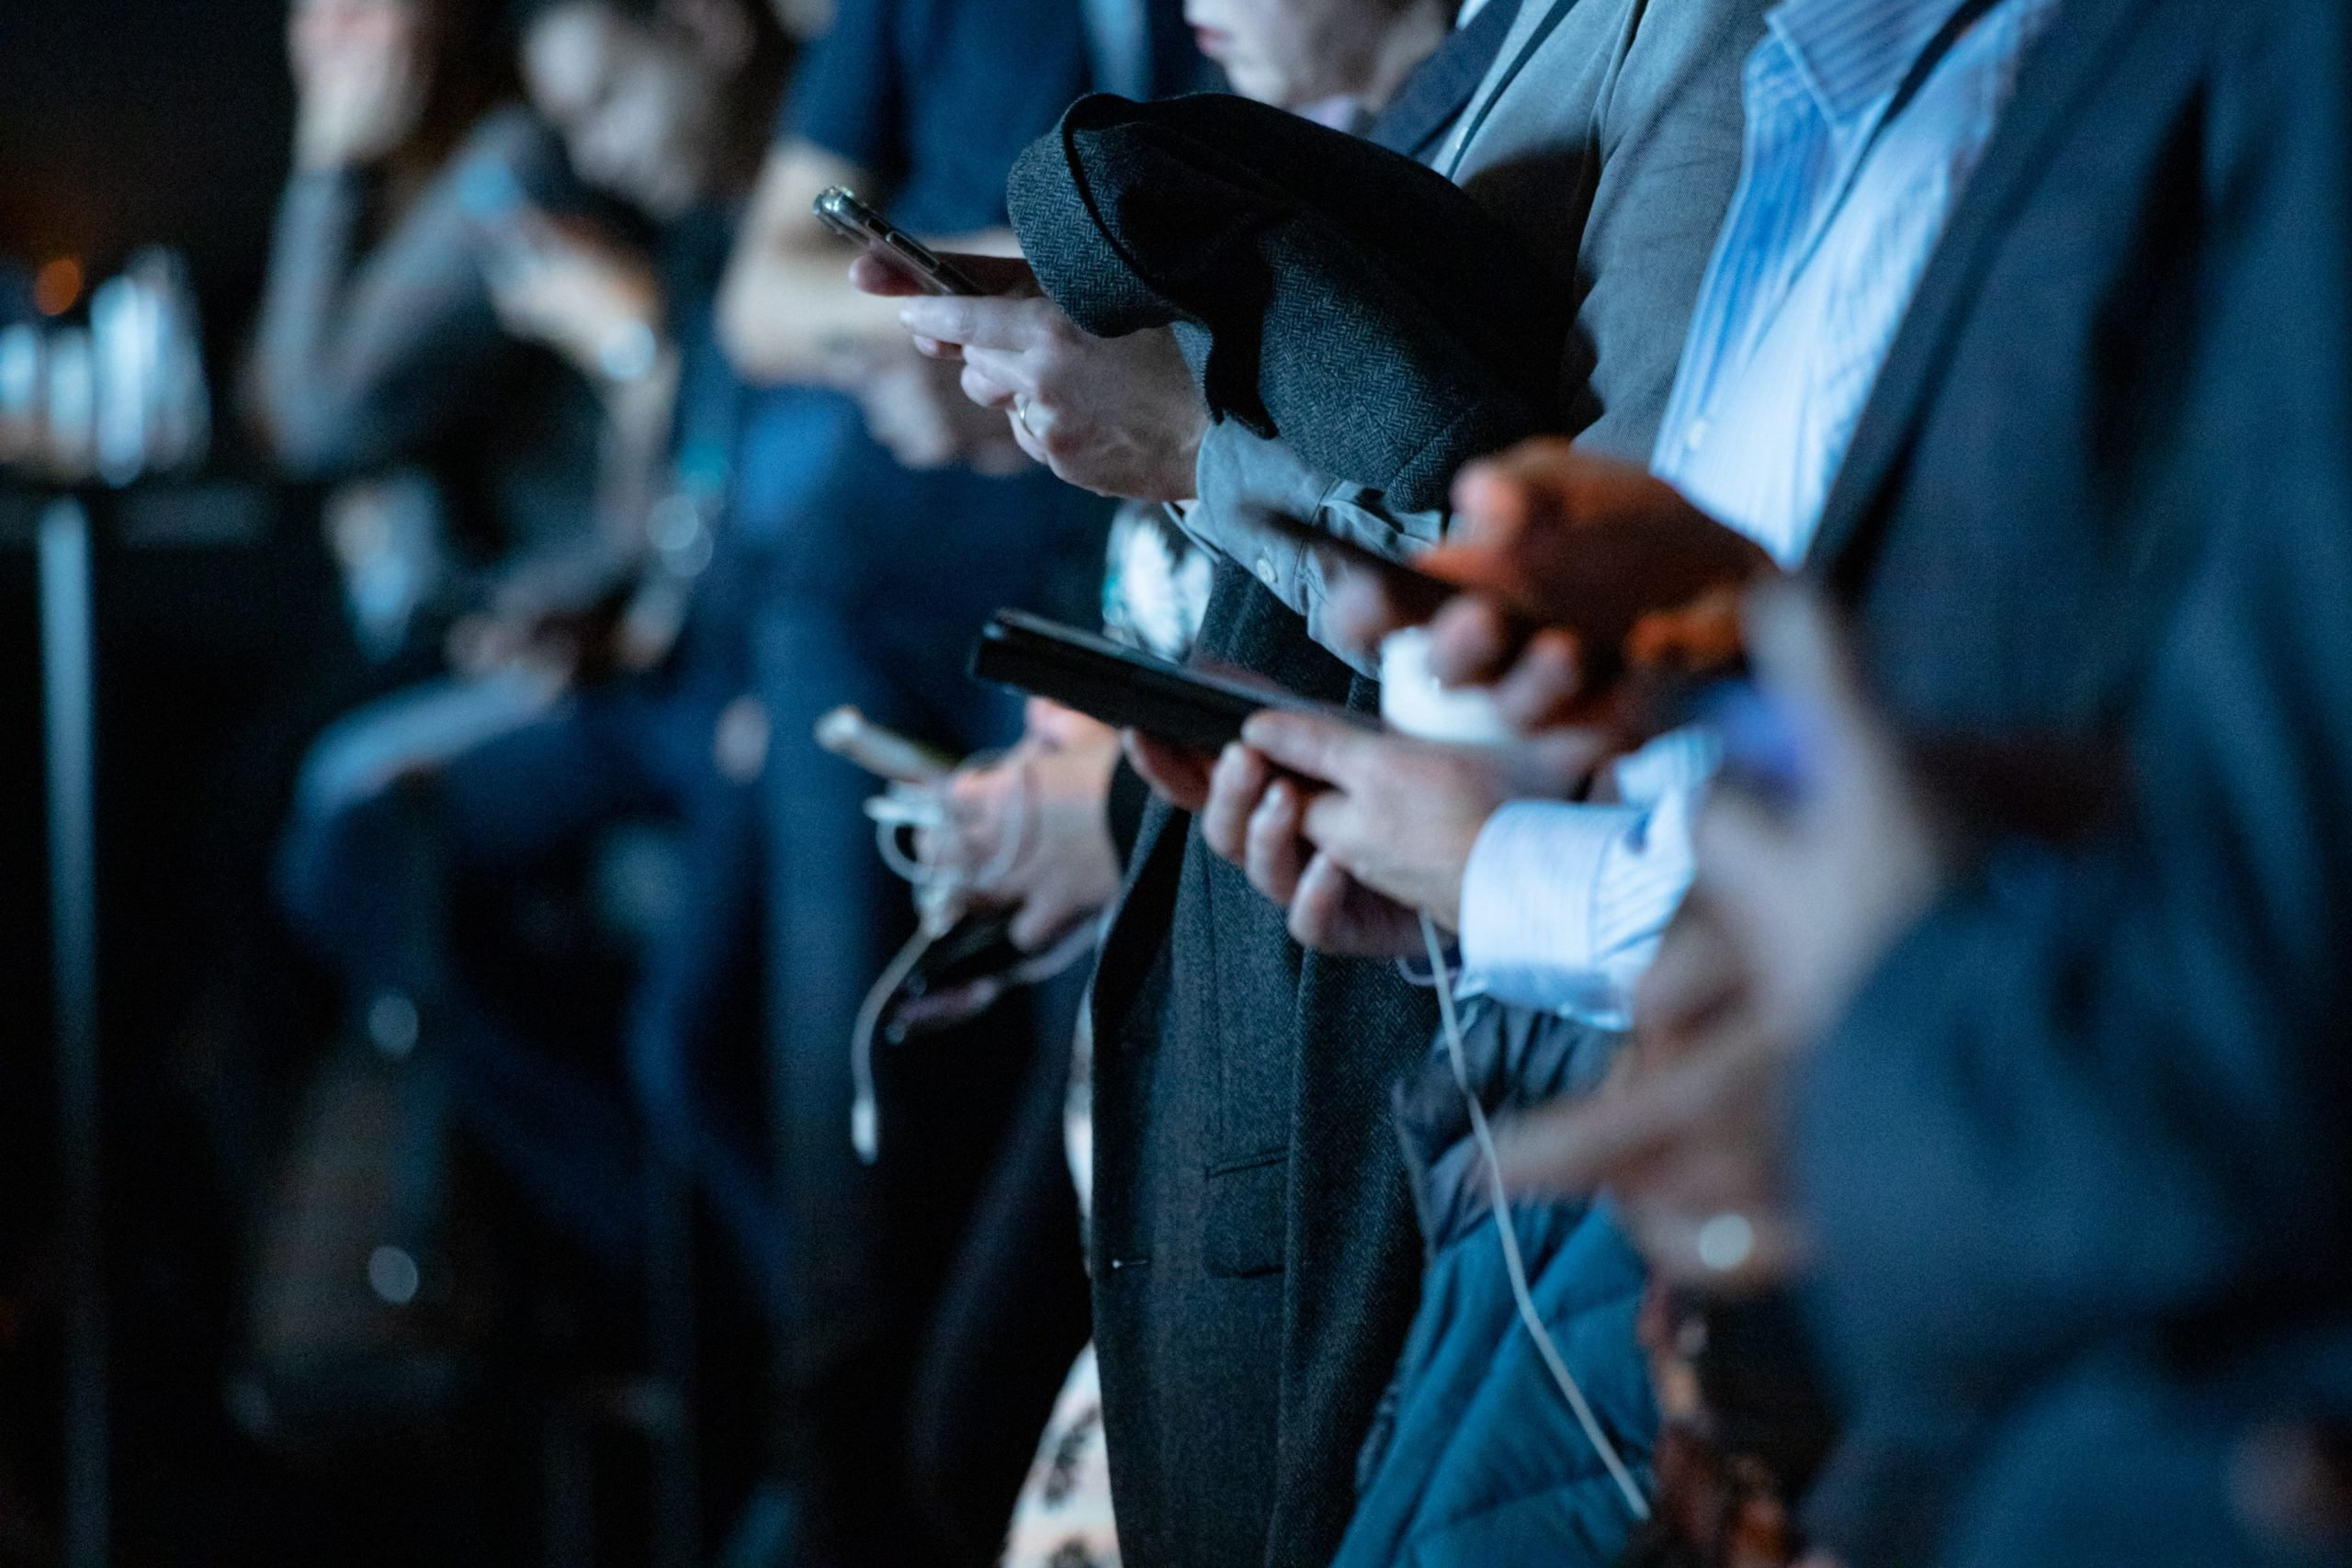 media members holding their cellphones during a presentation